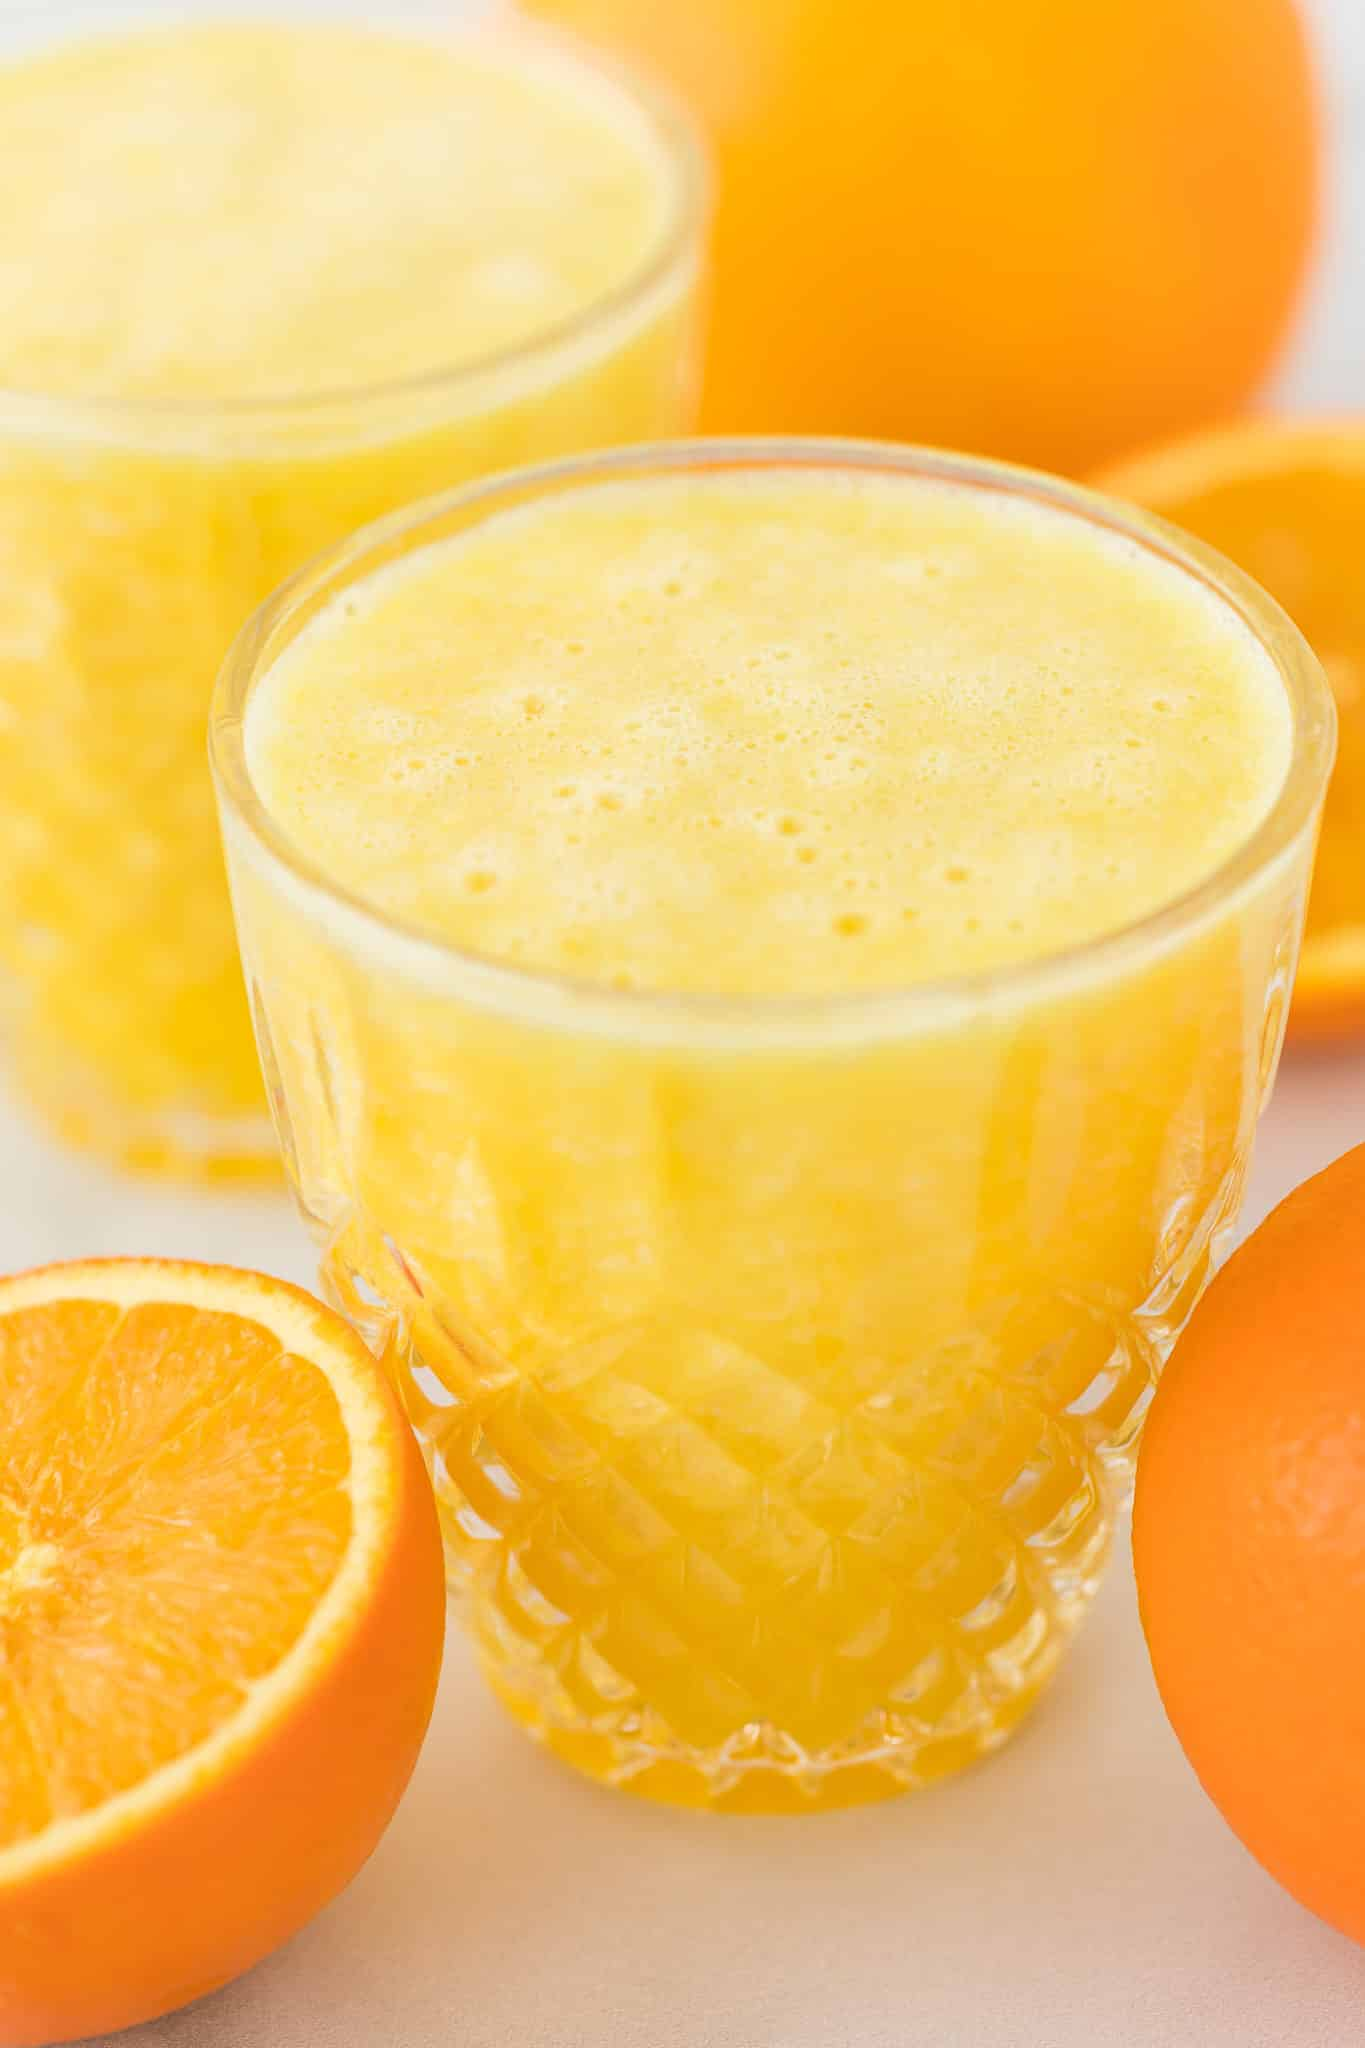 blended orange juice served in a pretty crystal glass surrounded by oranges